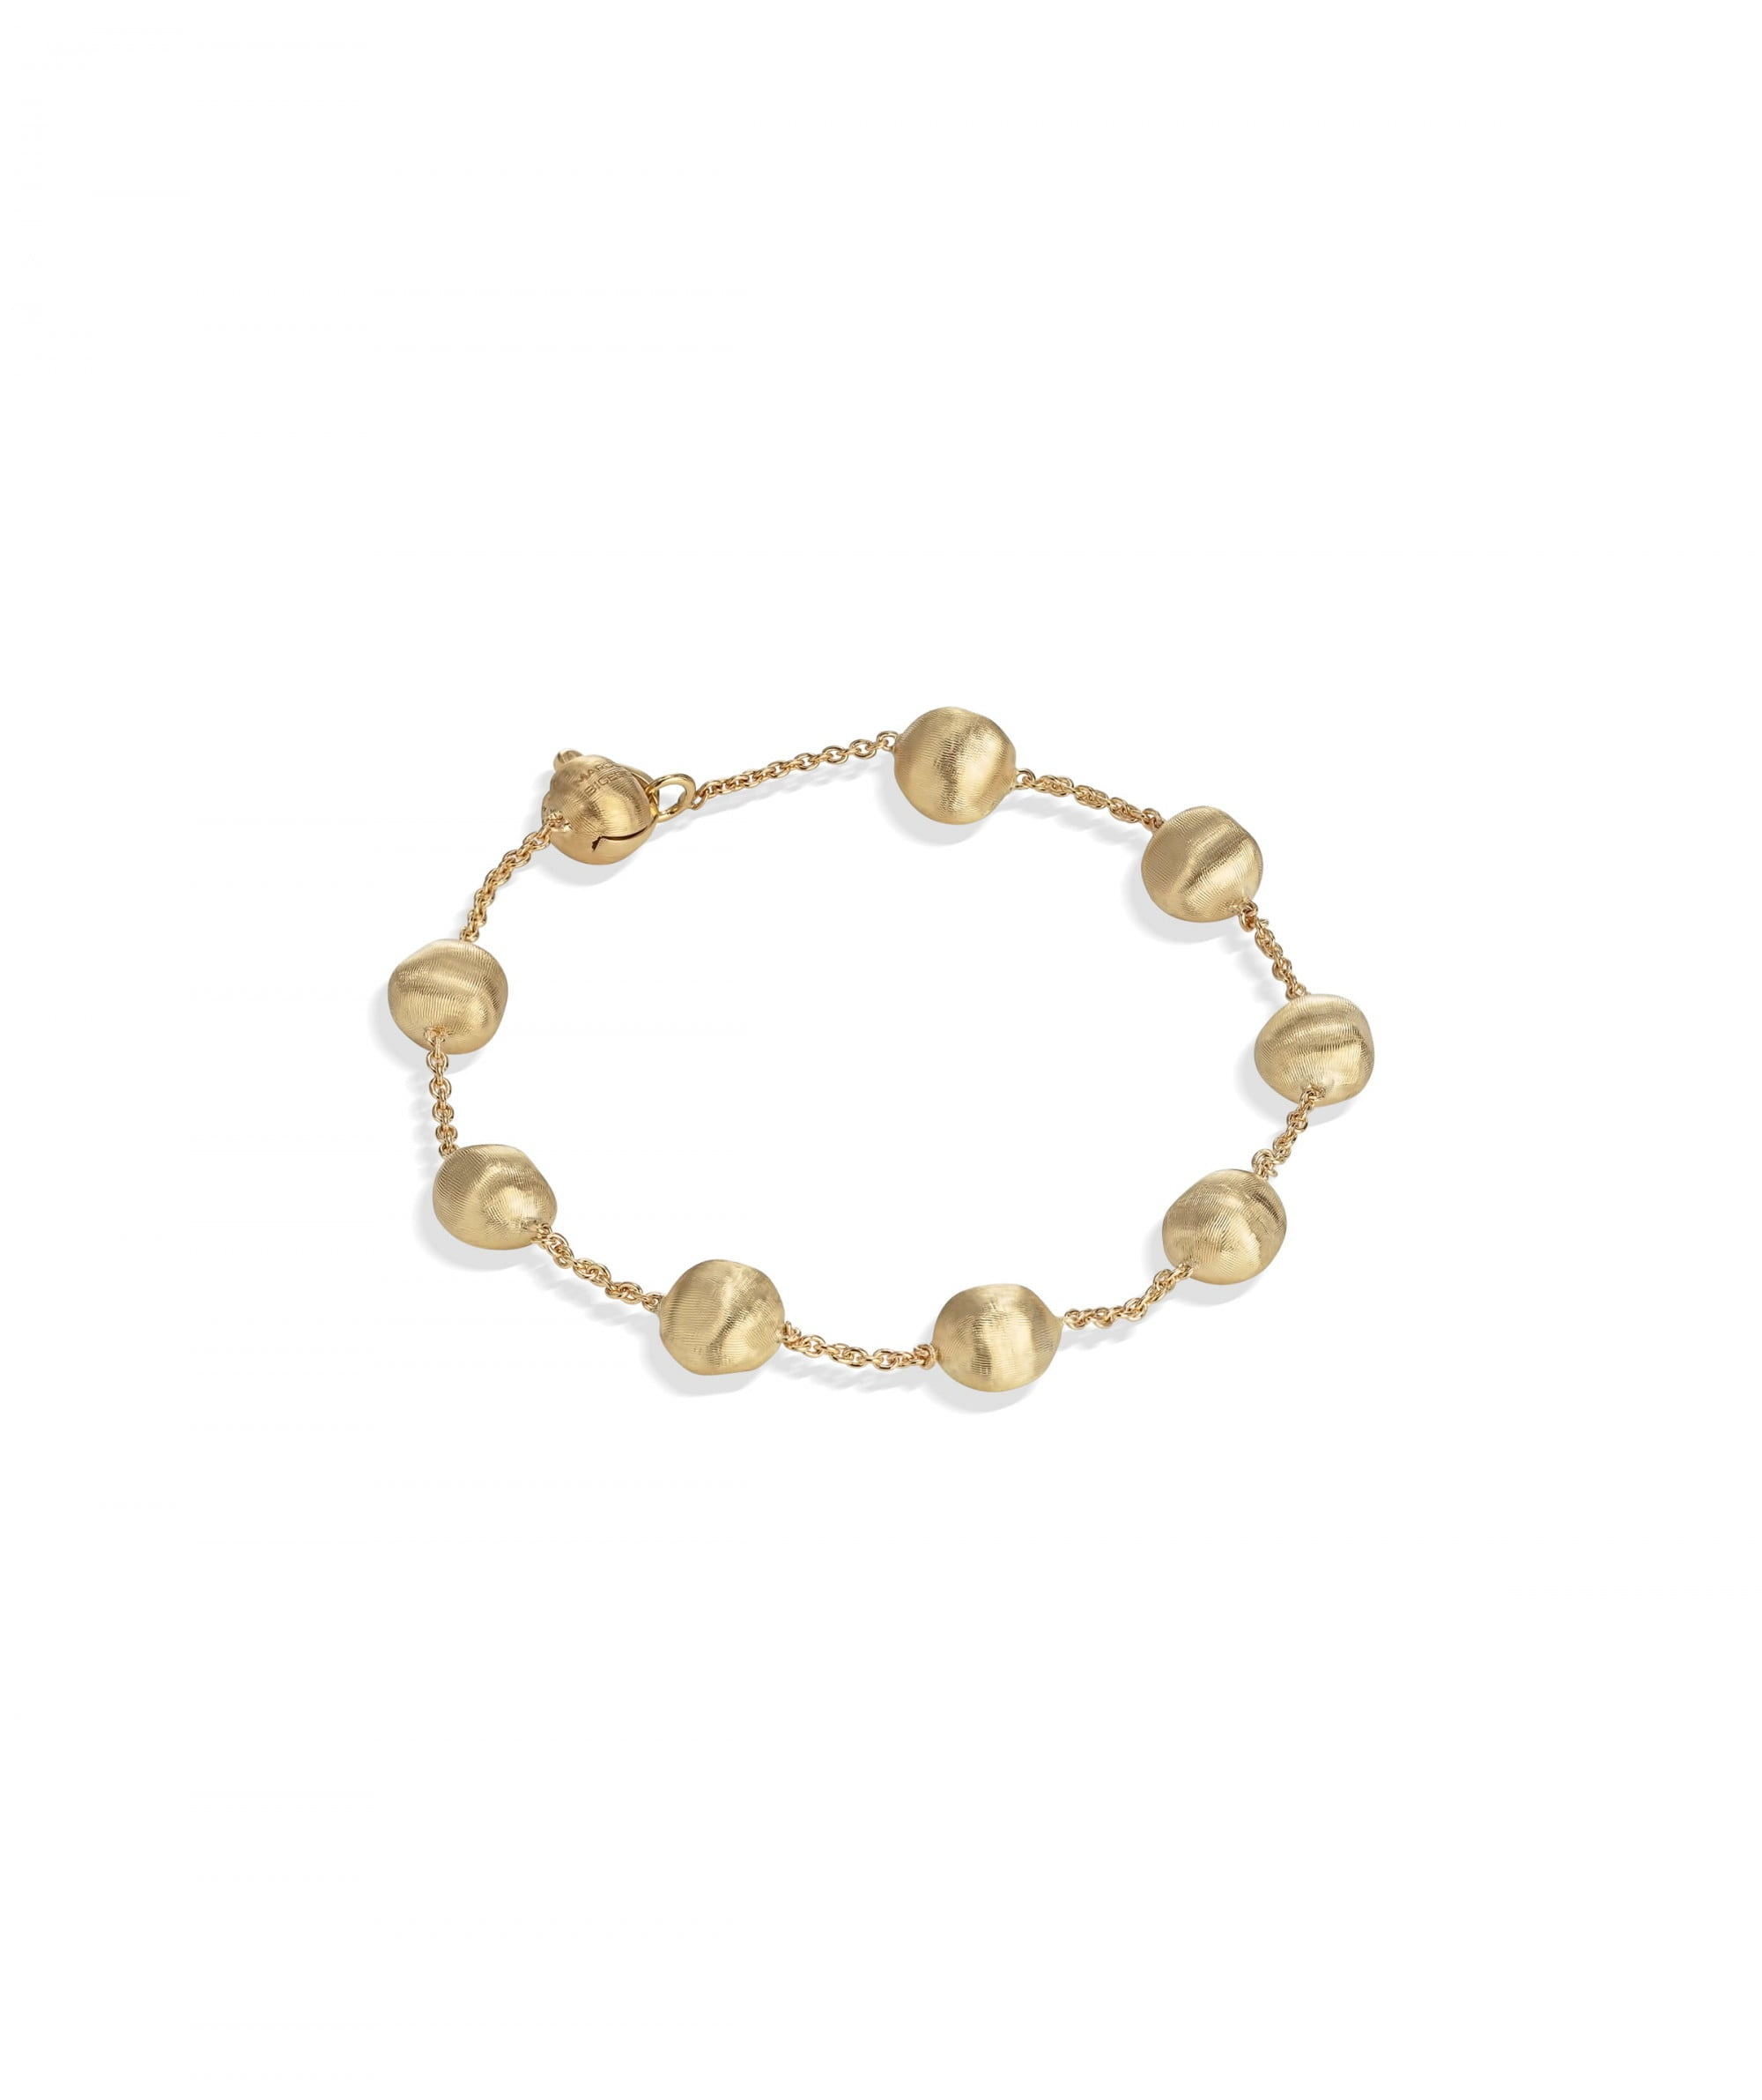 Africa Bracelet in 18k Yellow Gold Light - Orsini Jewellers NZ